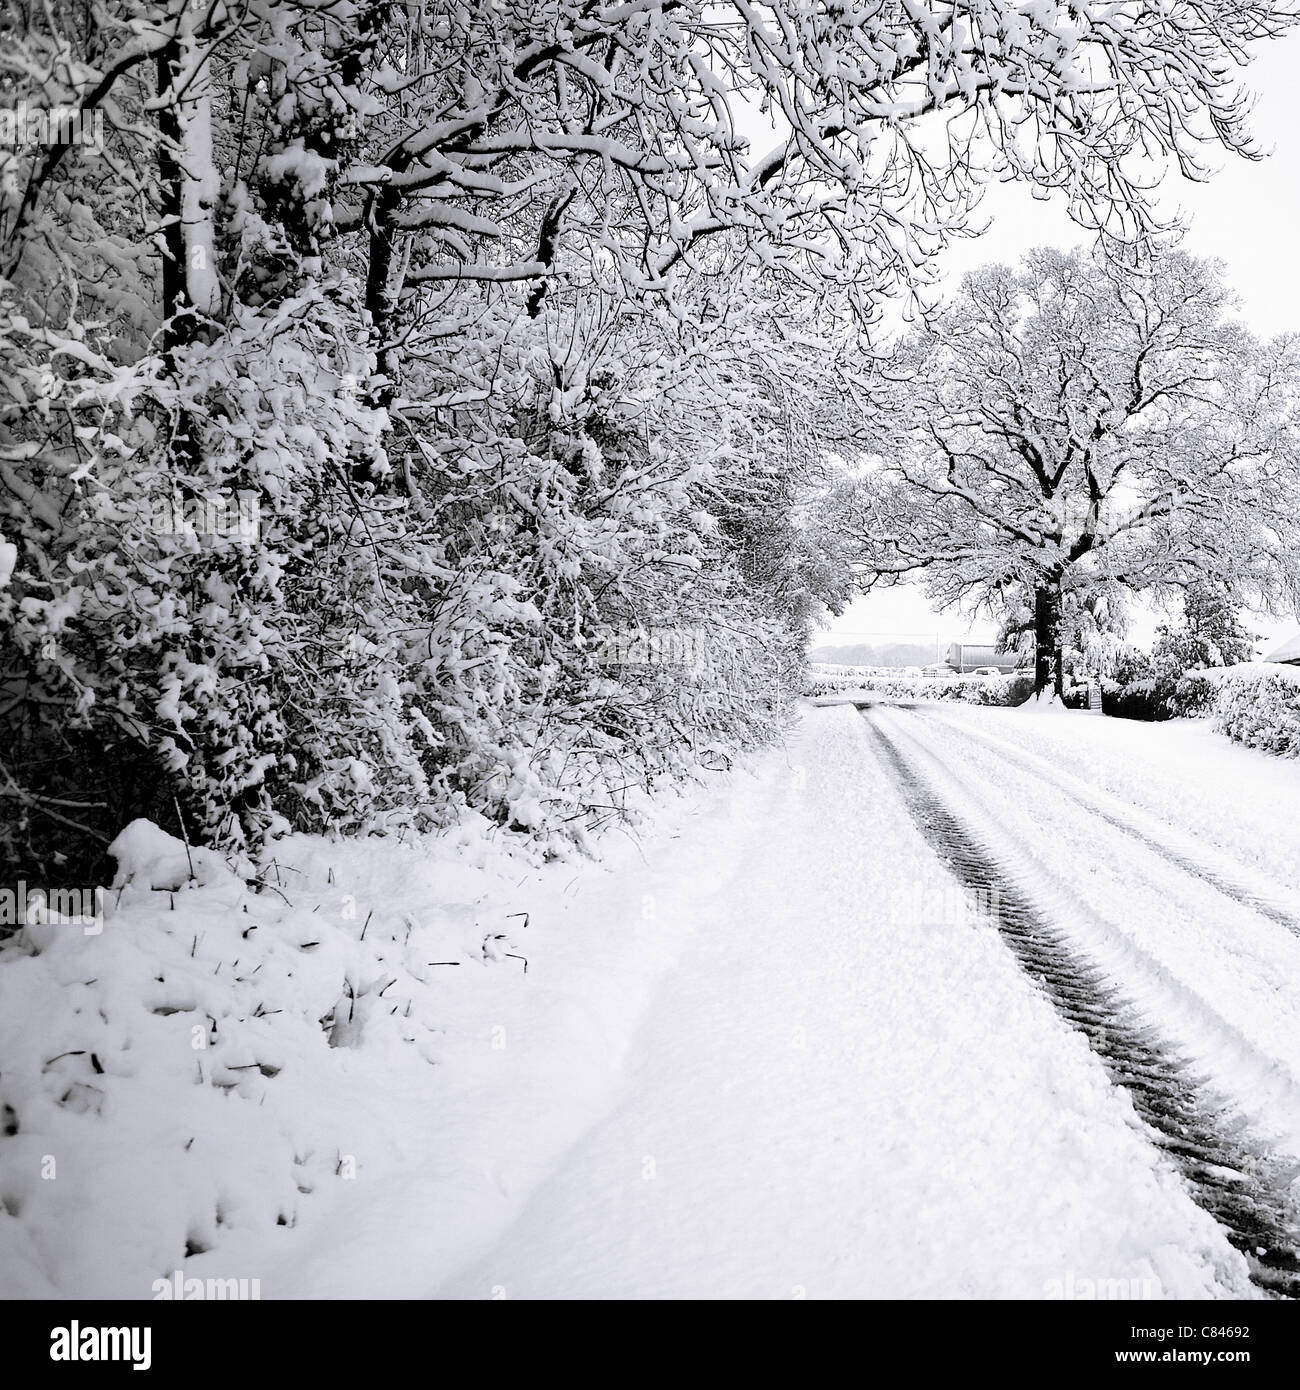 Snow covered trees lining road - Stock Image